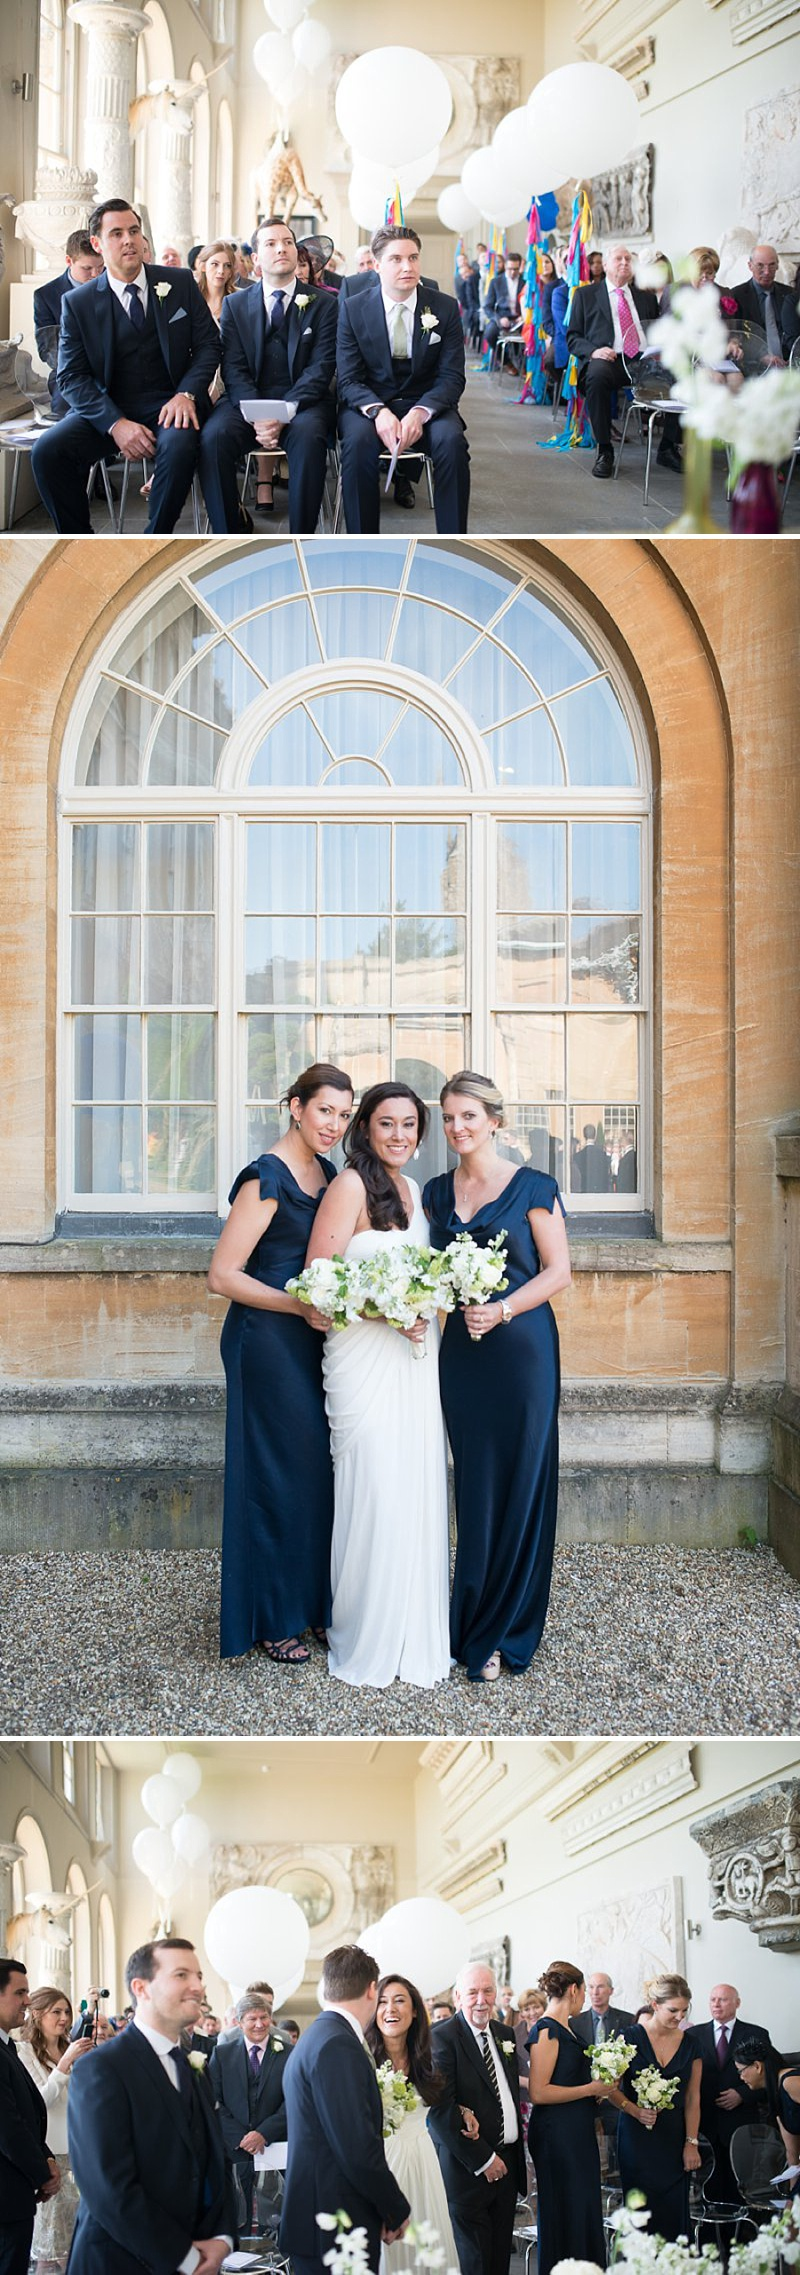 A gatsby themed wedding at Aynhoe Park with navy bridesmaids and bright balloons_0142